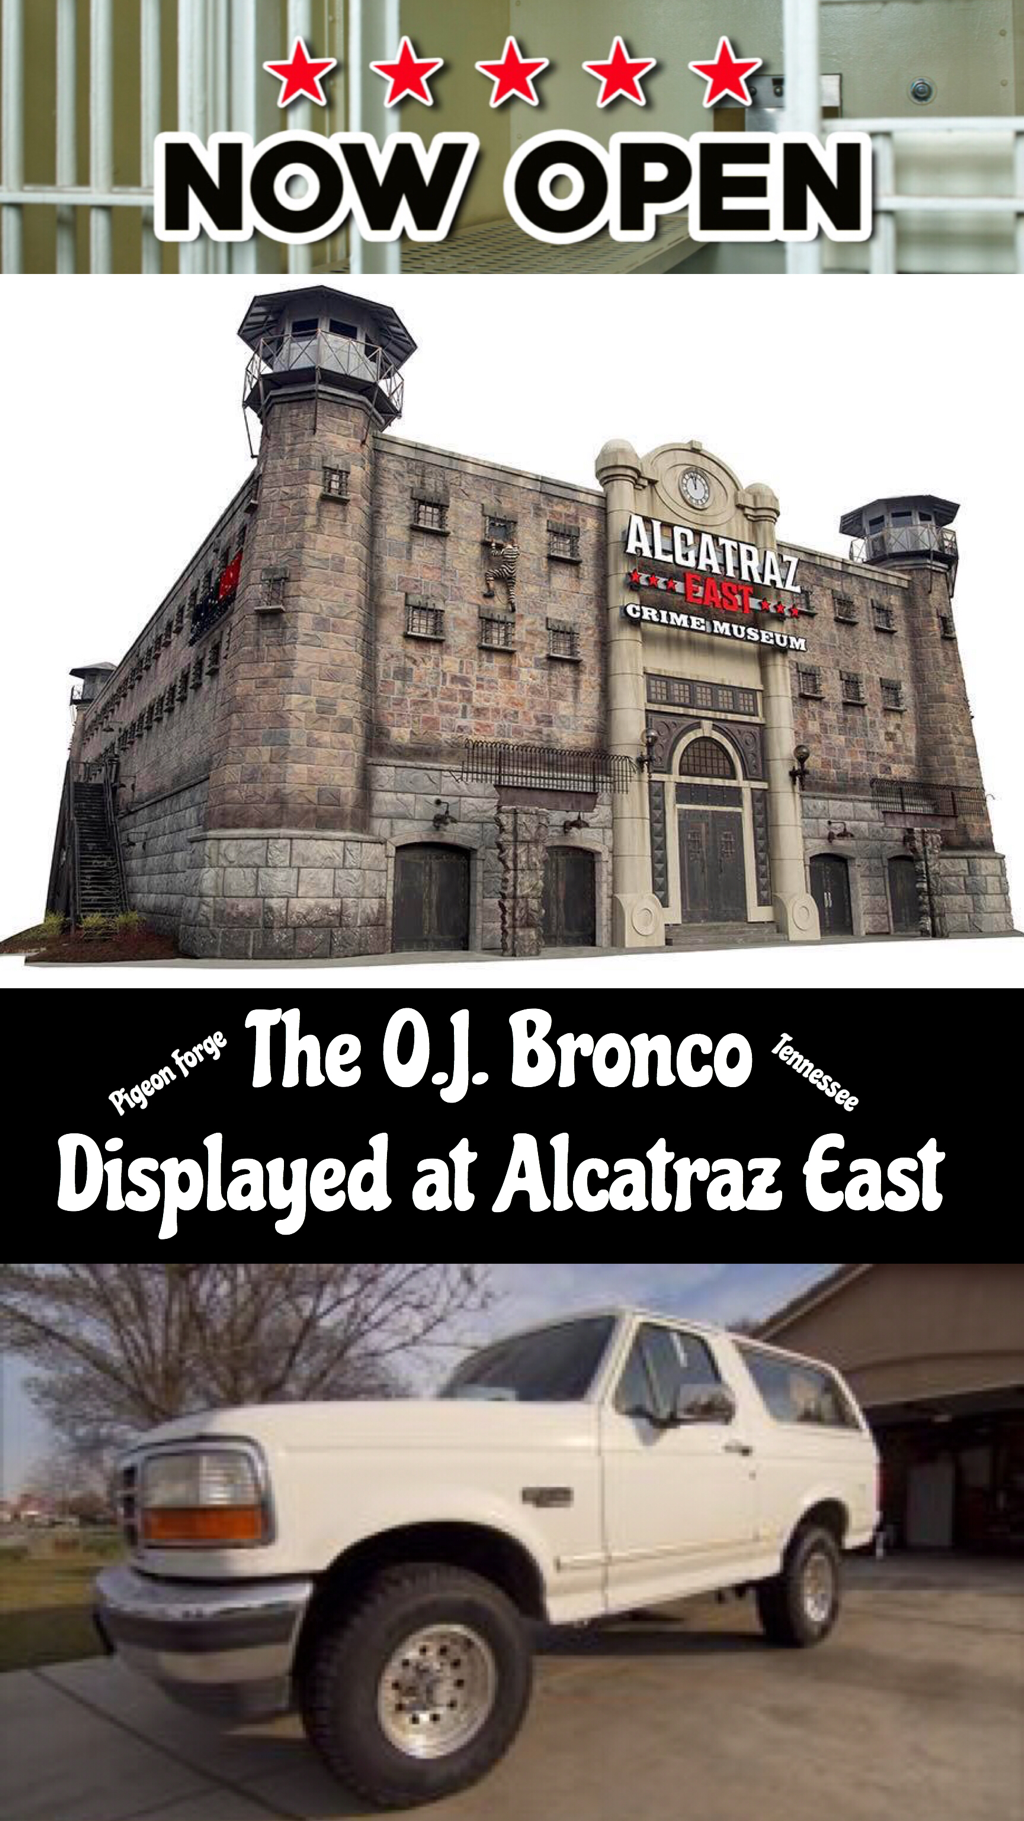 The O.J. Bronco Displayed at Alcatraz East